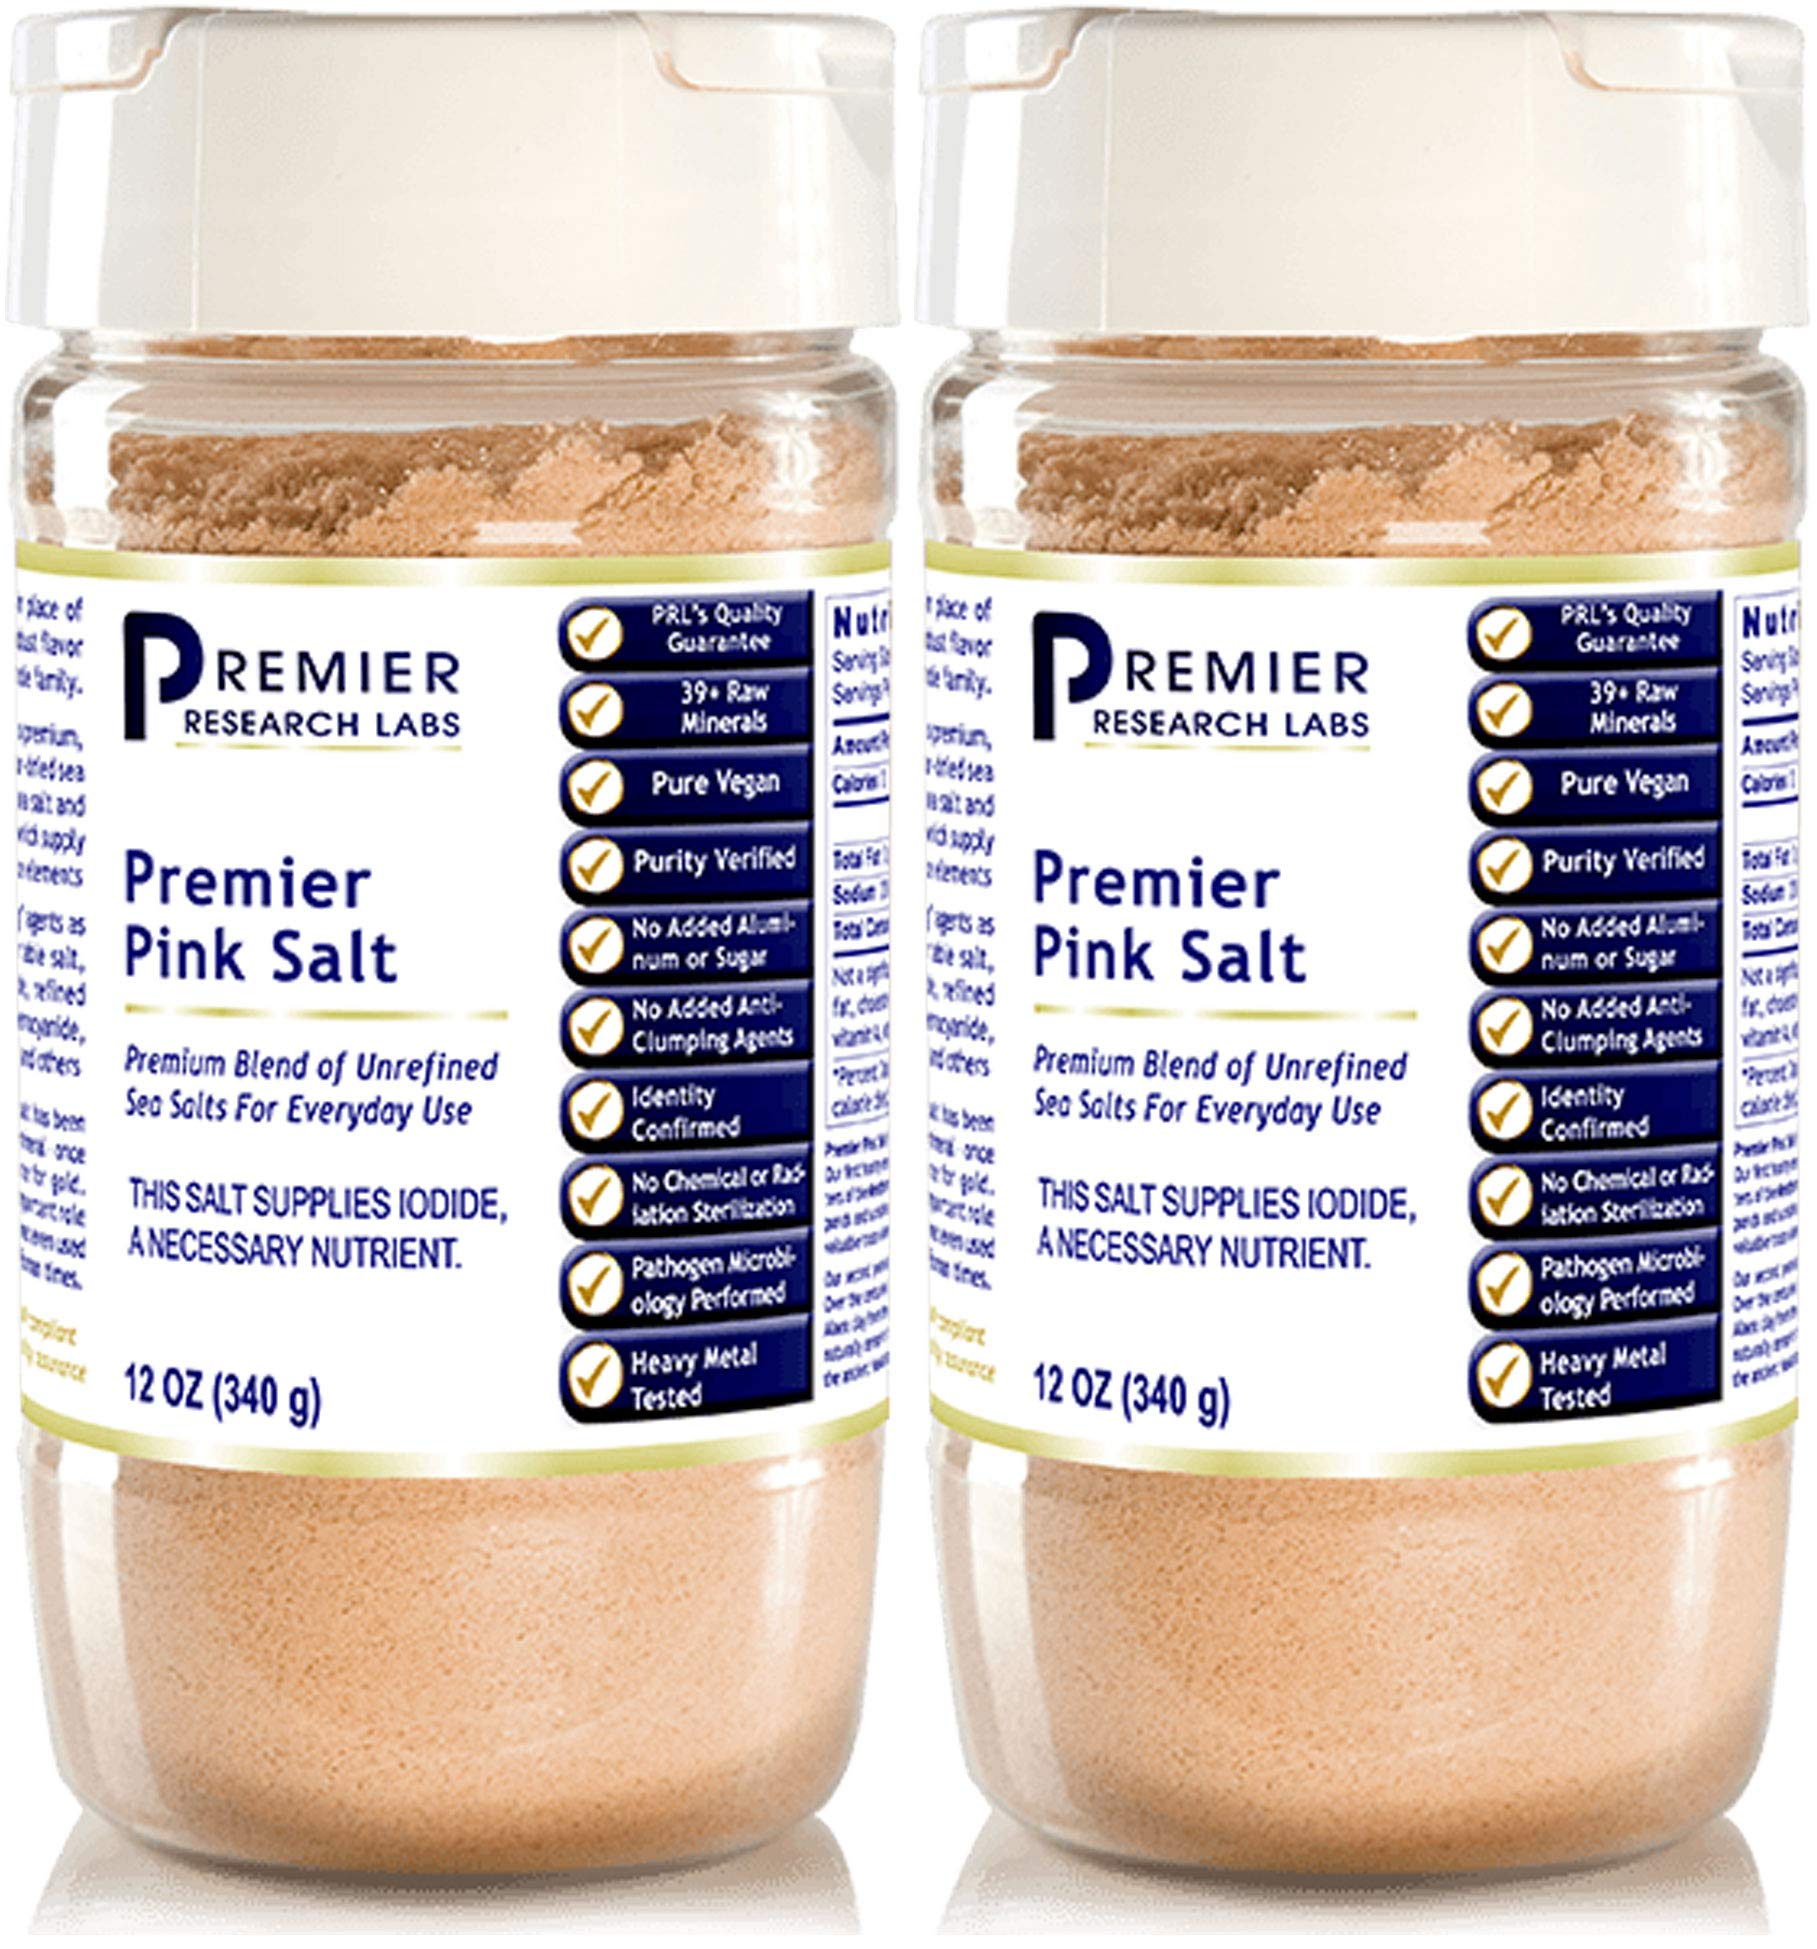 Premier Research Labs - Pink Salt, 12 Oz - 2 Pack by Premier Research Labs